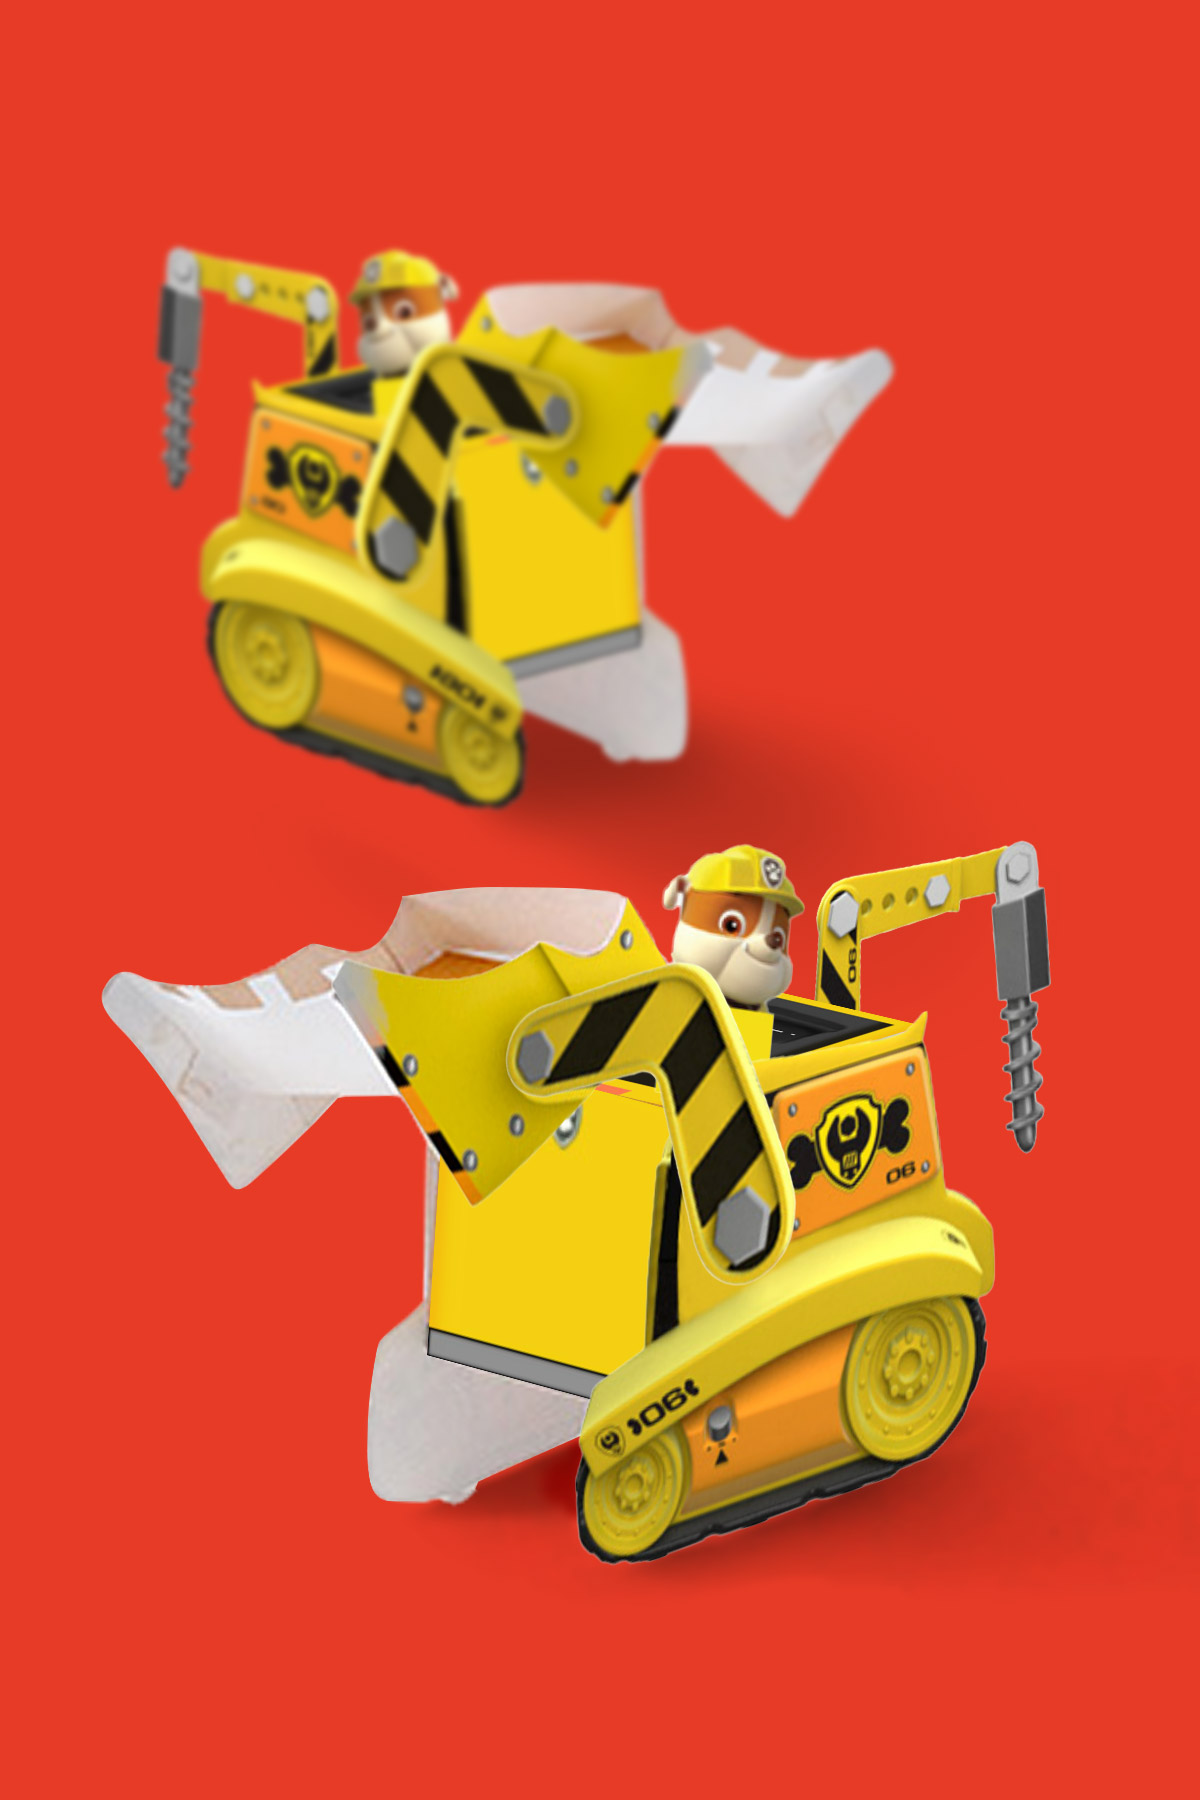 PAW Patrol Rubble Vehicle Toy